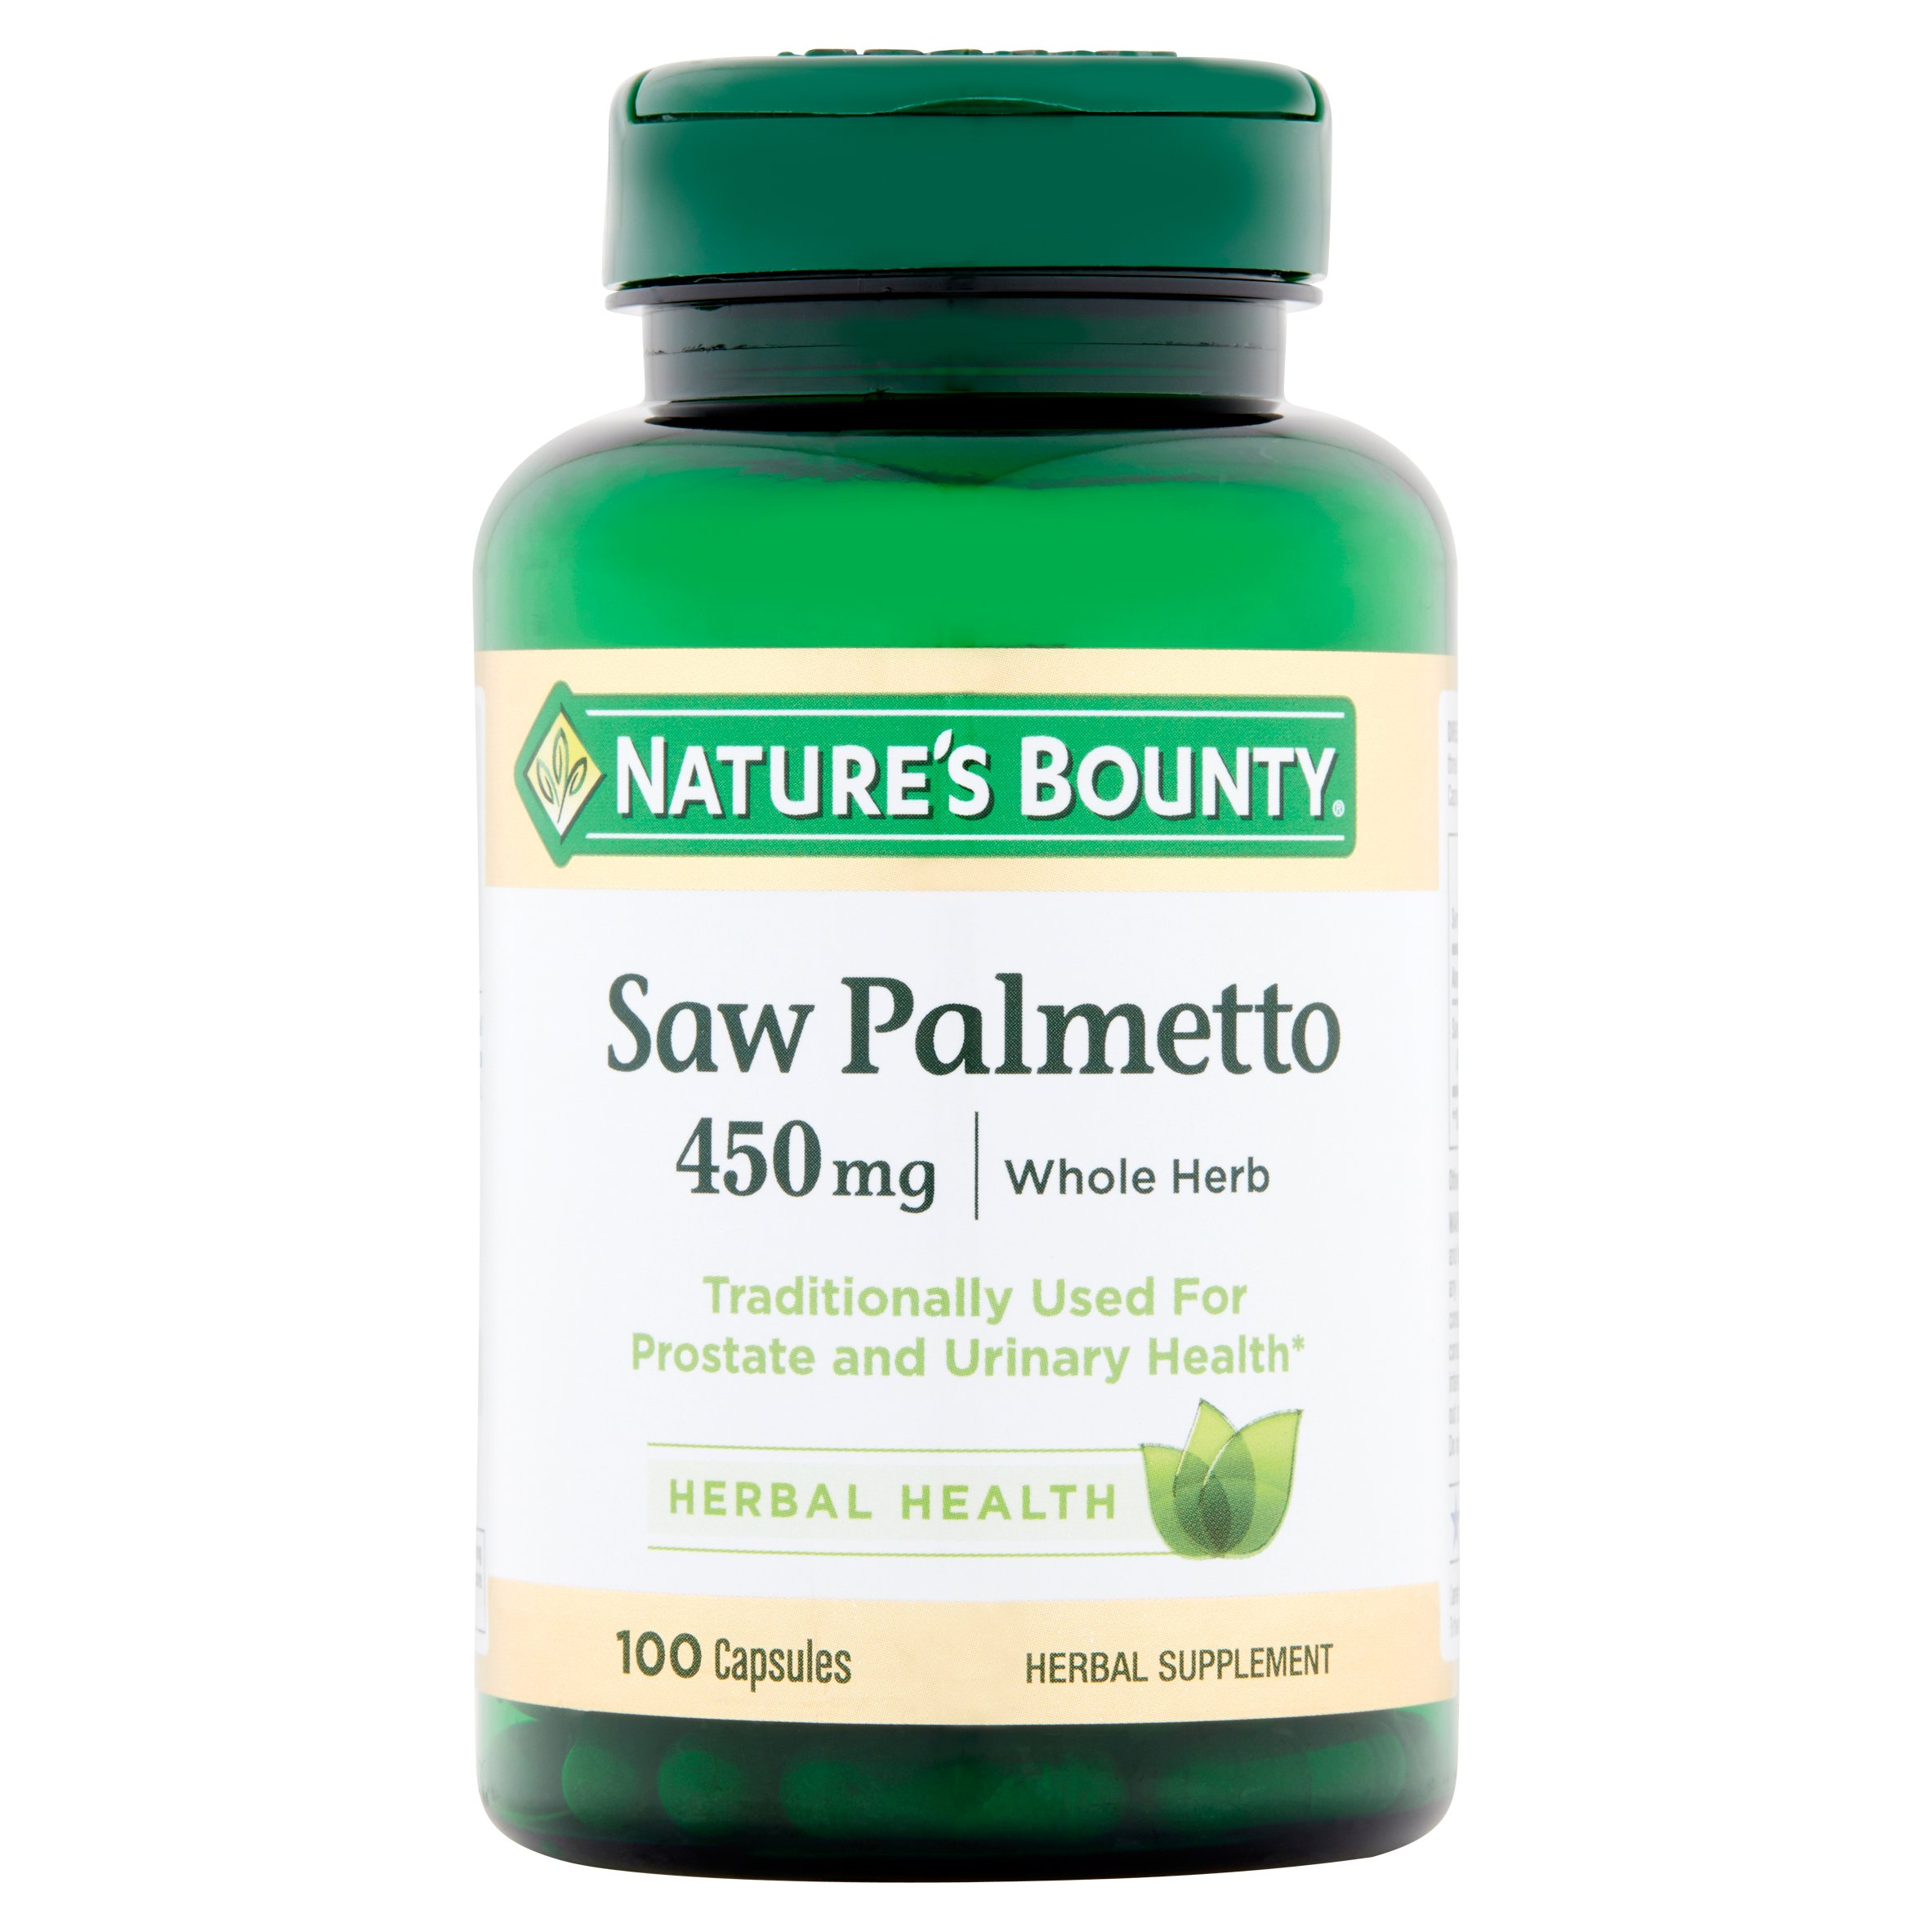 Nature's Bounty Saw Palmetto Capsules, 450mg, 100 count